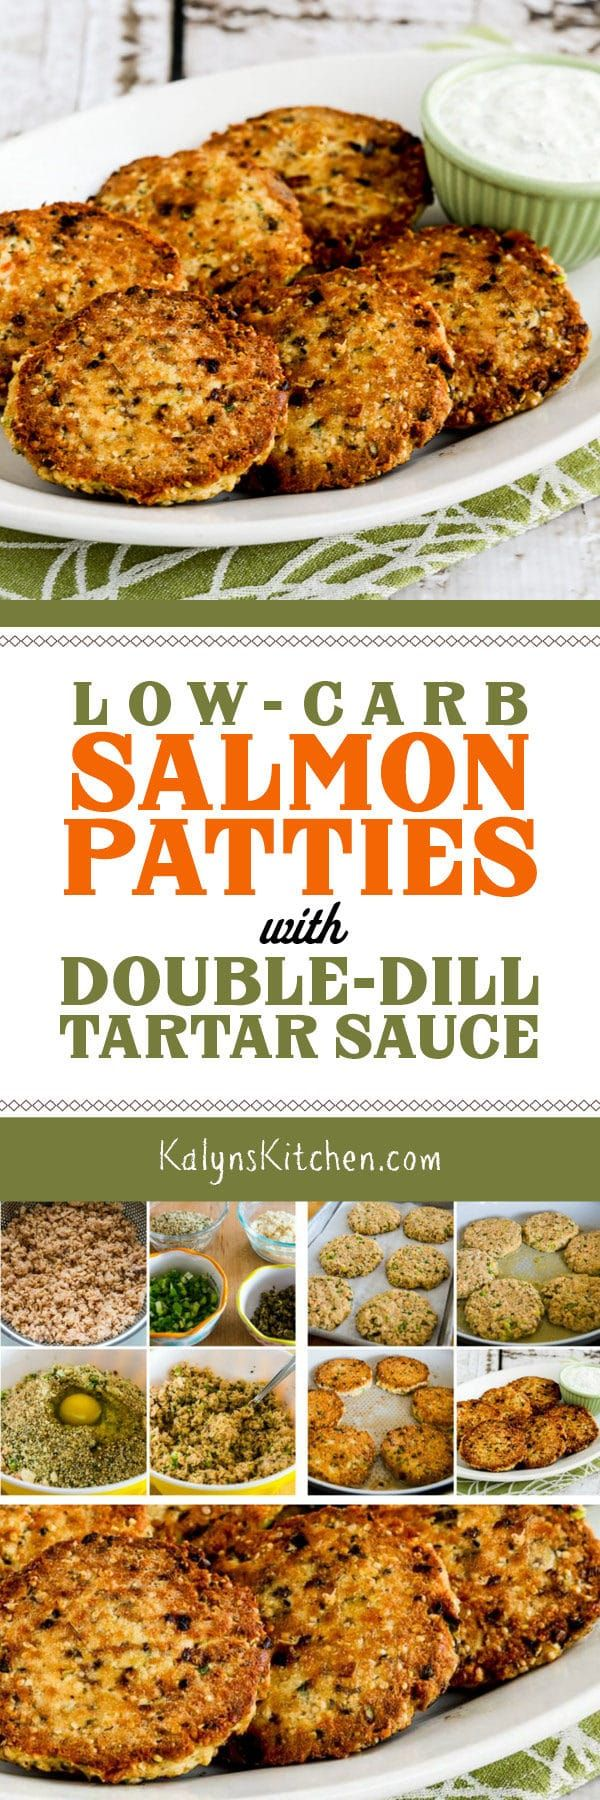 Low-Carb Salmon Patties with Double-Dill Tartar Sauce (Video)